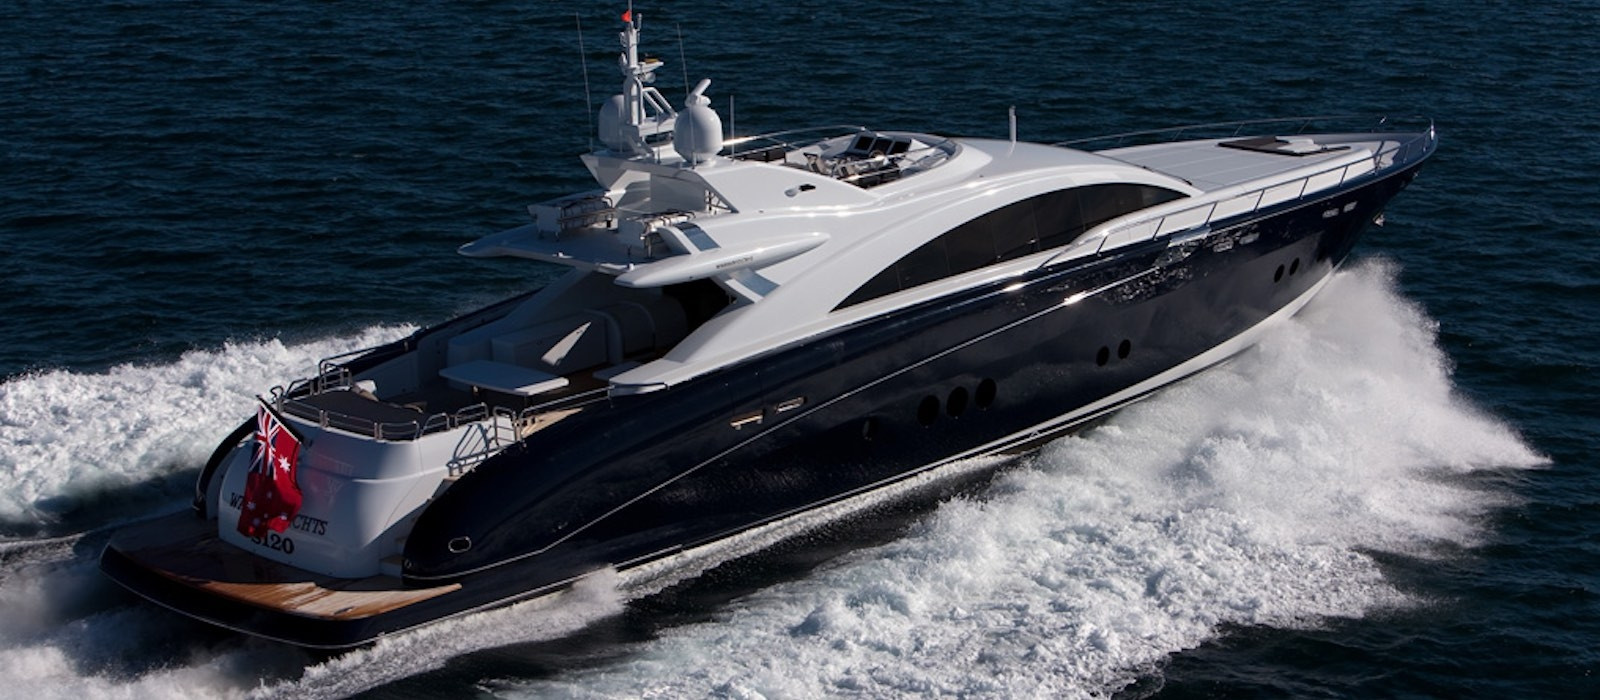 Main profile image of Quantum super yacht hire